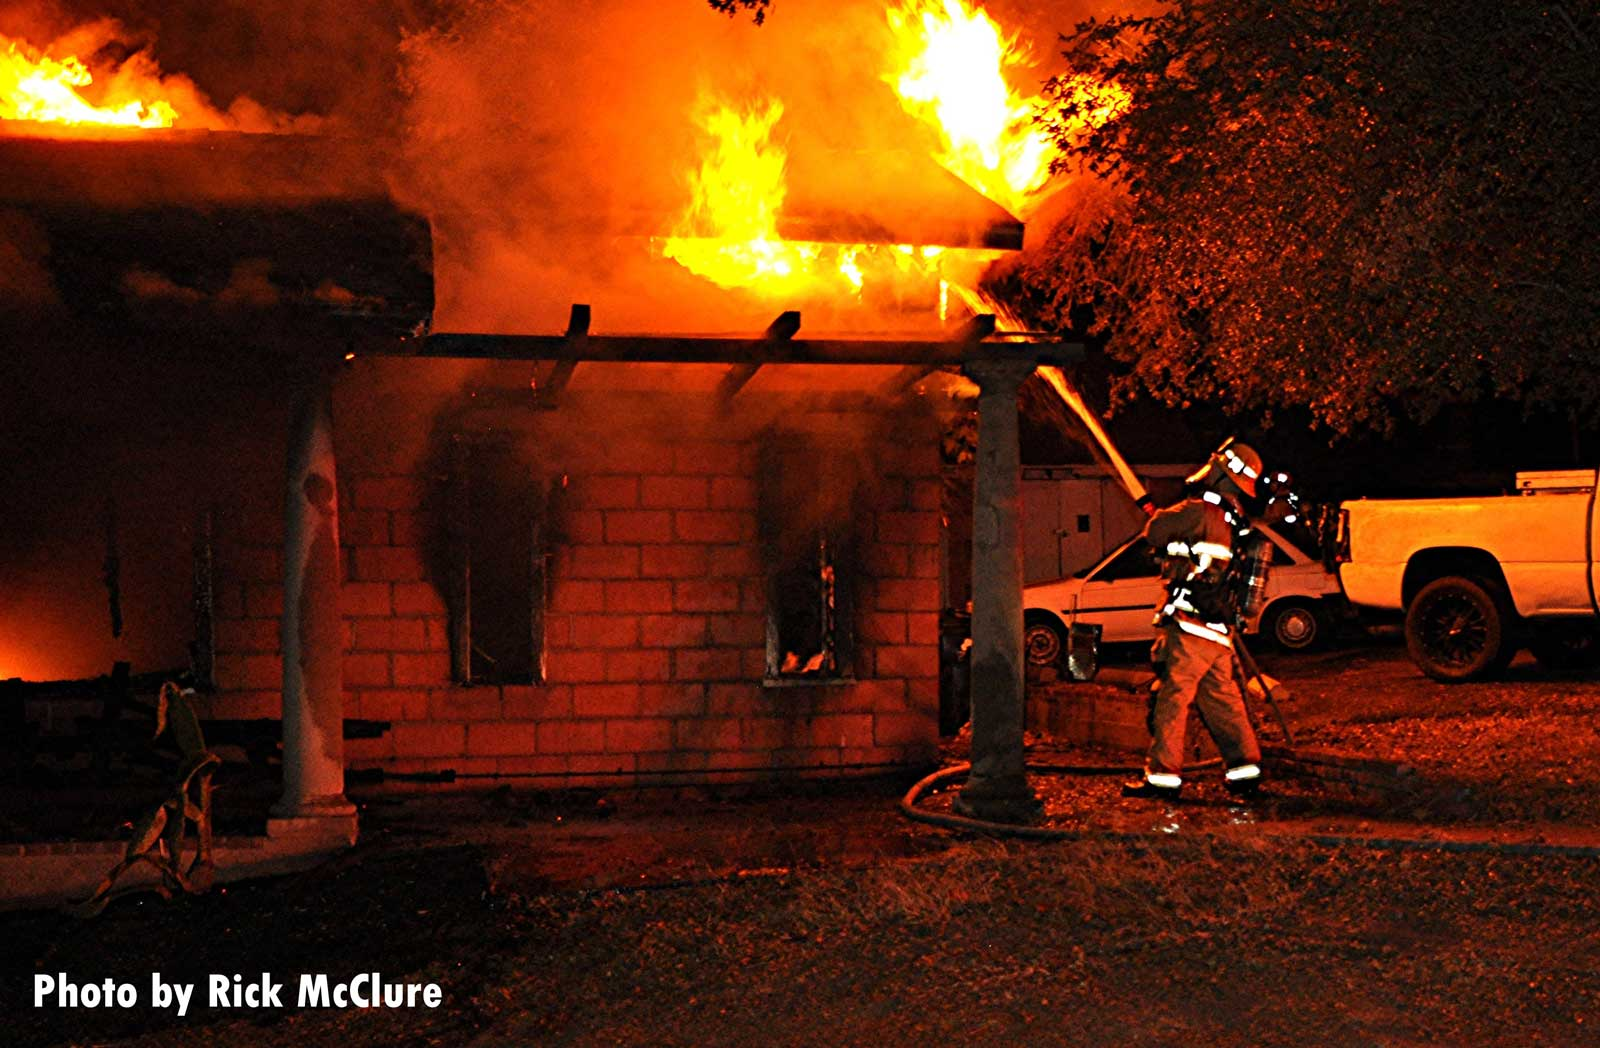 LAFD firefighter applies water on flames shooting from a home